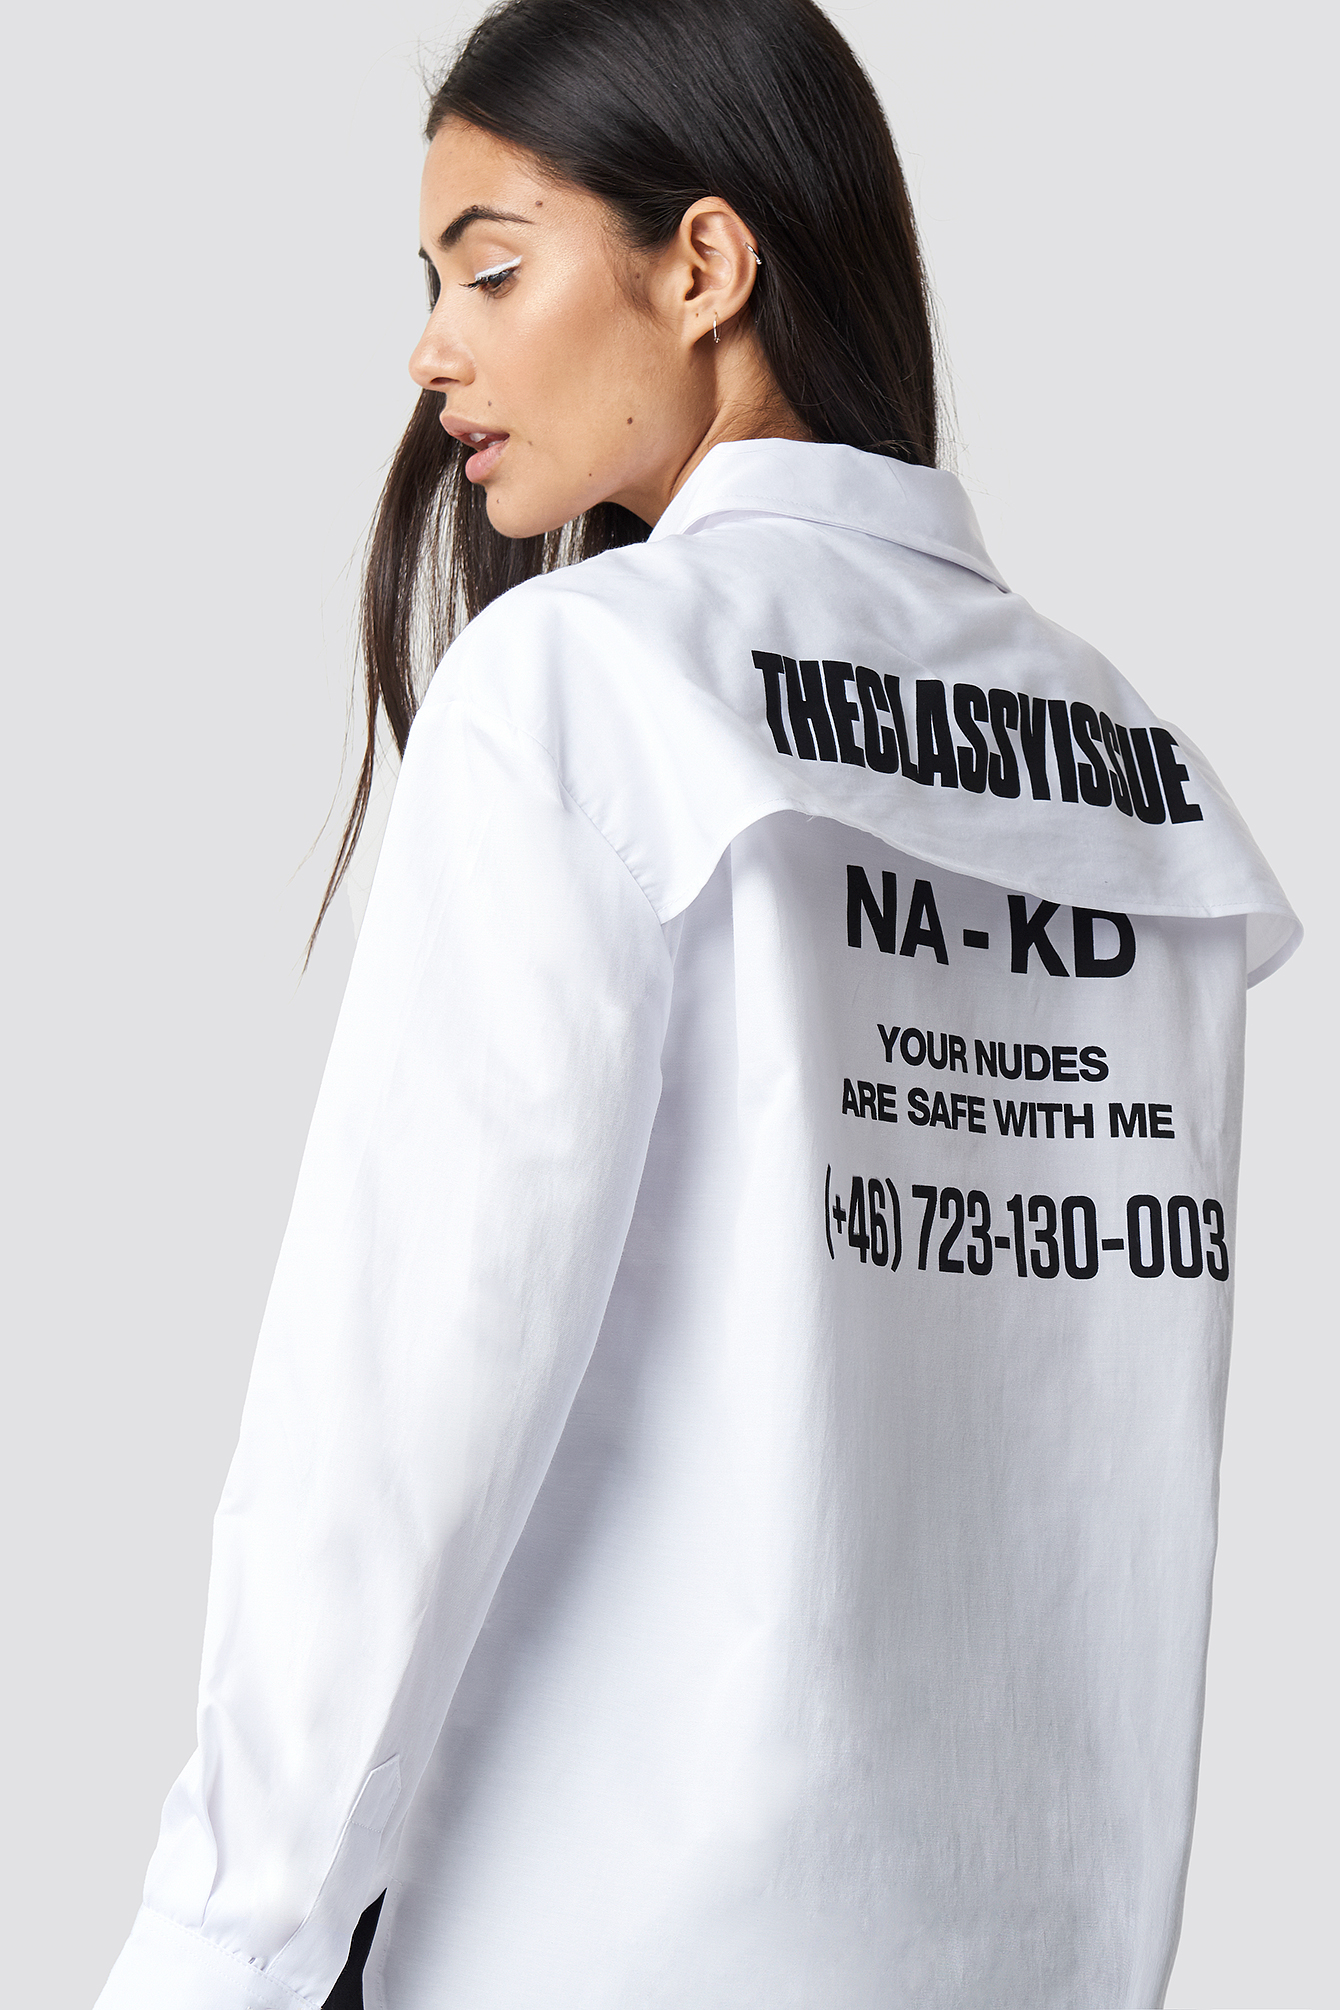 The Classy Issue X Na Kd The Classy Safety Shirt White